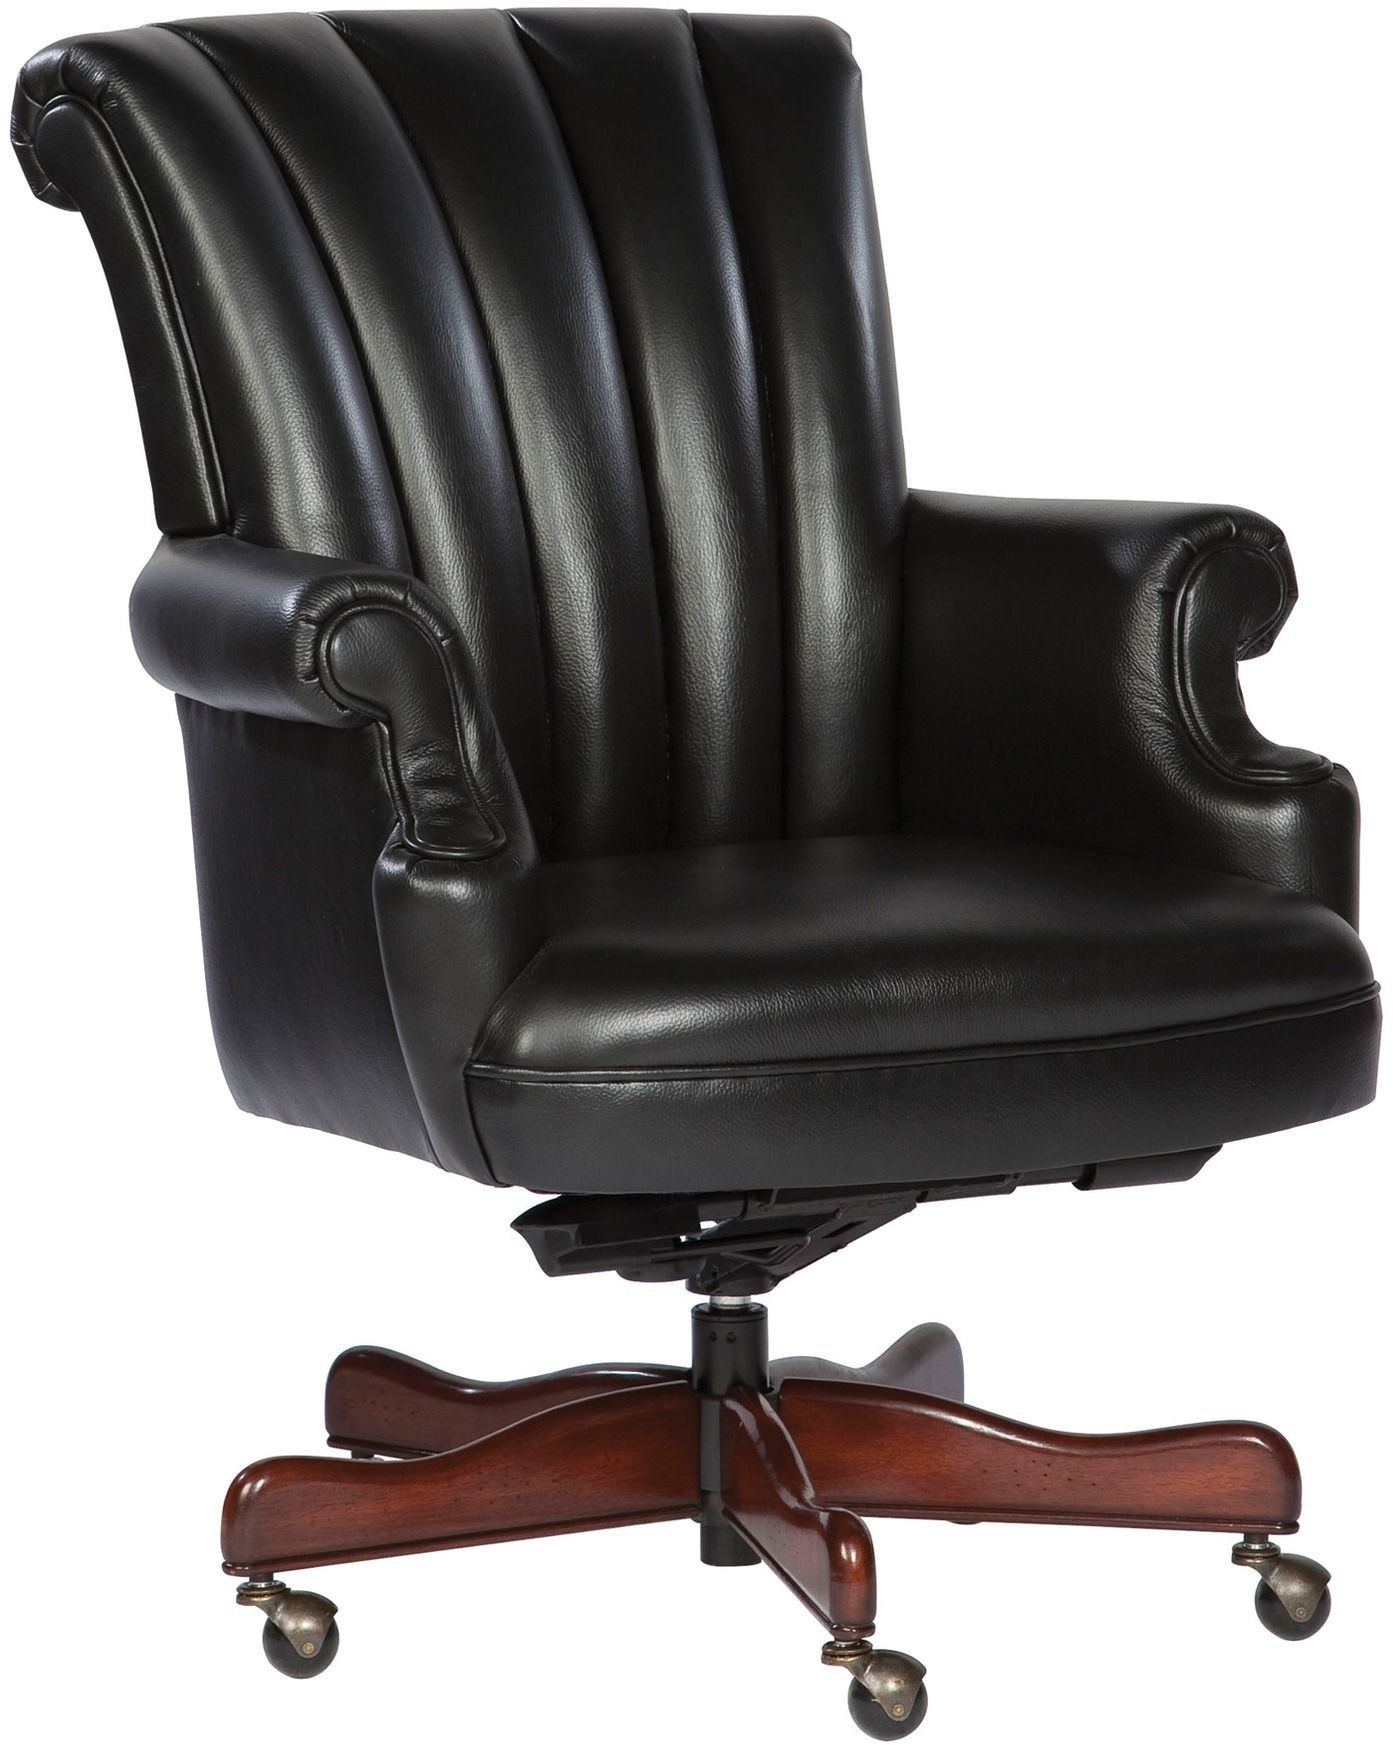 Executive Black Ribbed Back Leather Chair from Hekman